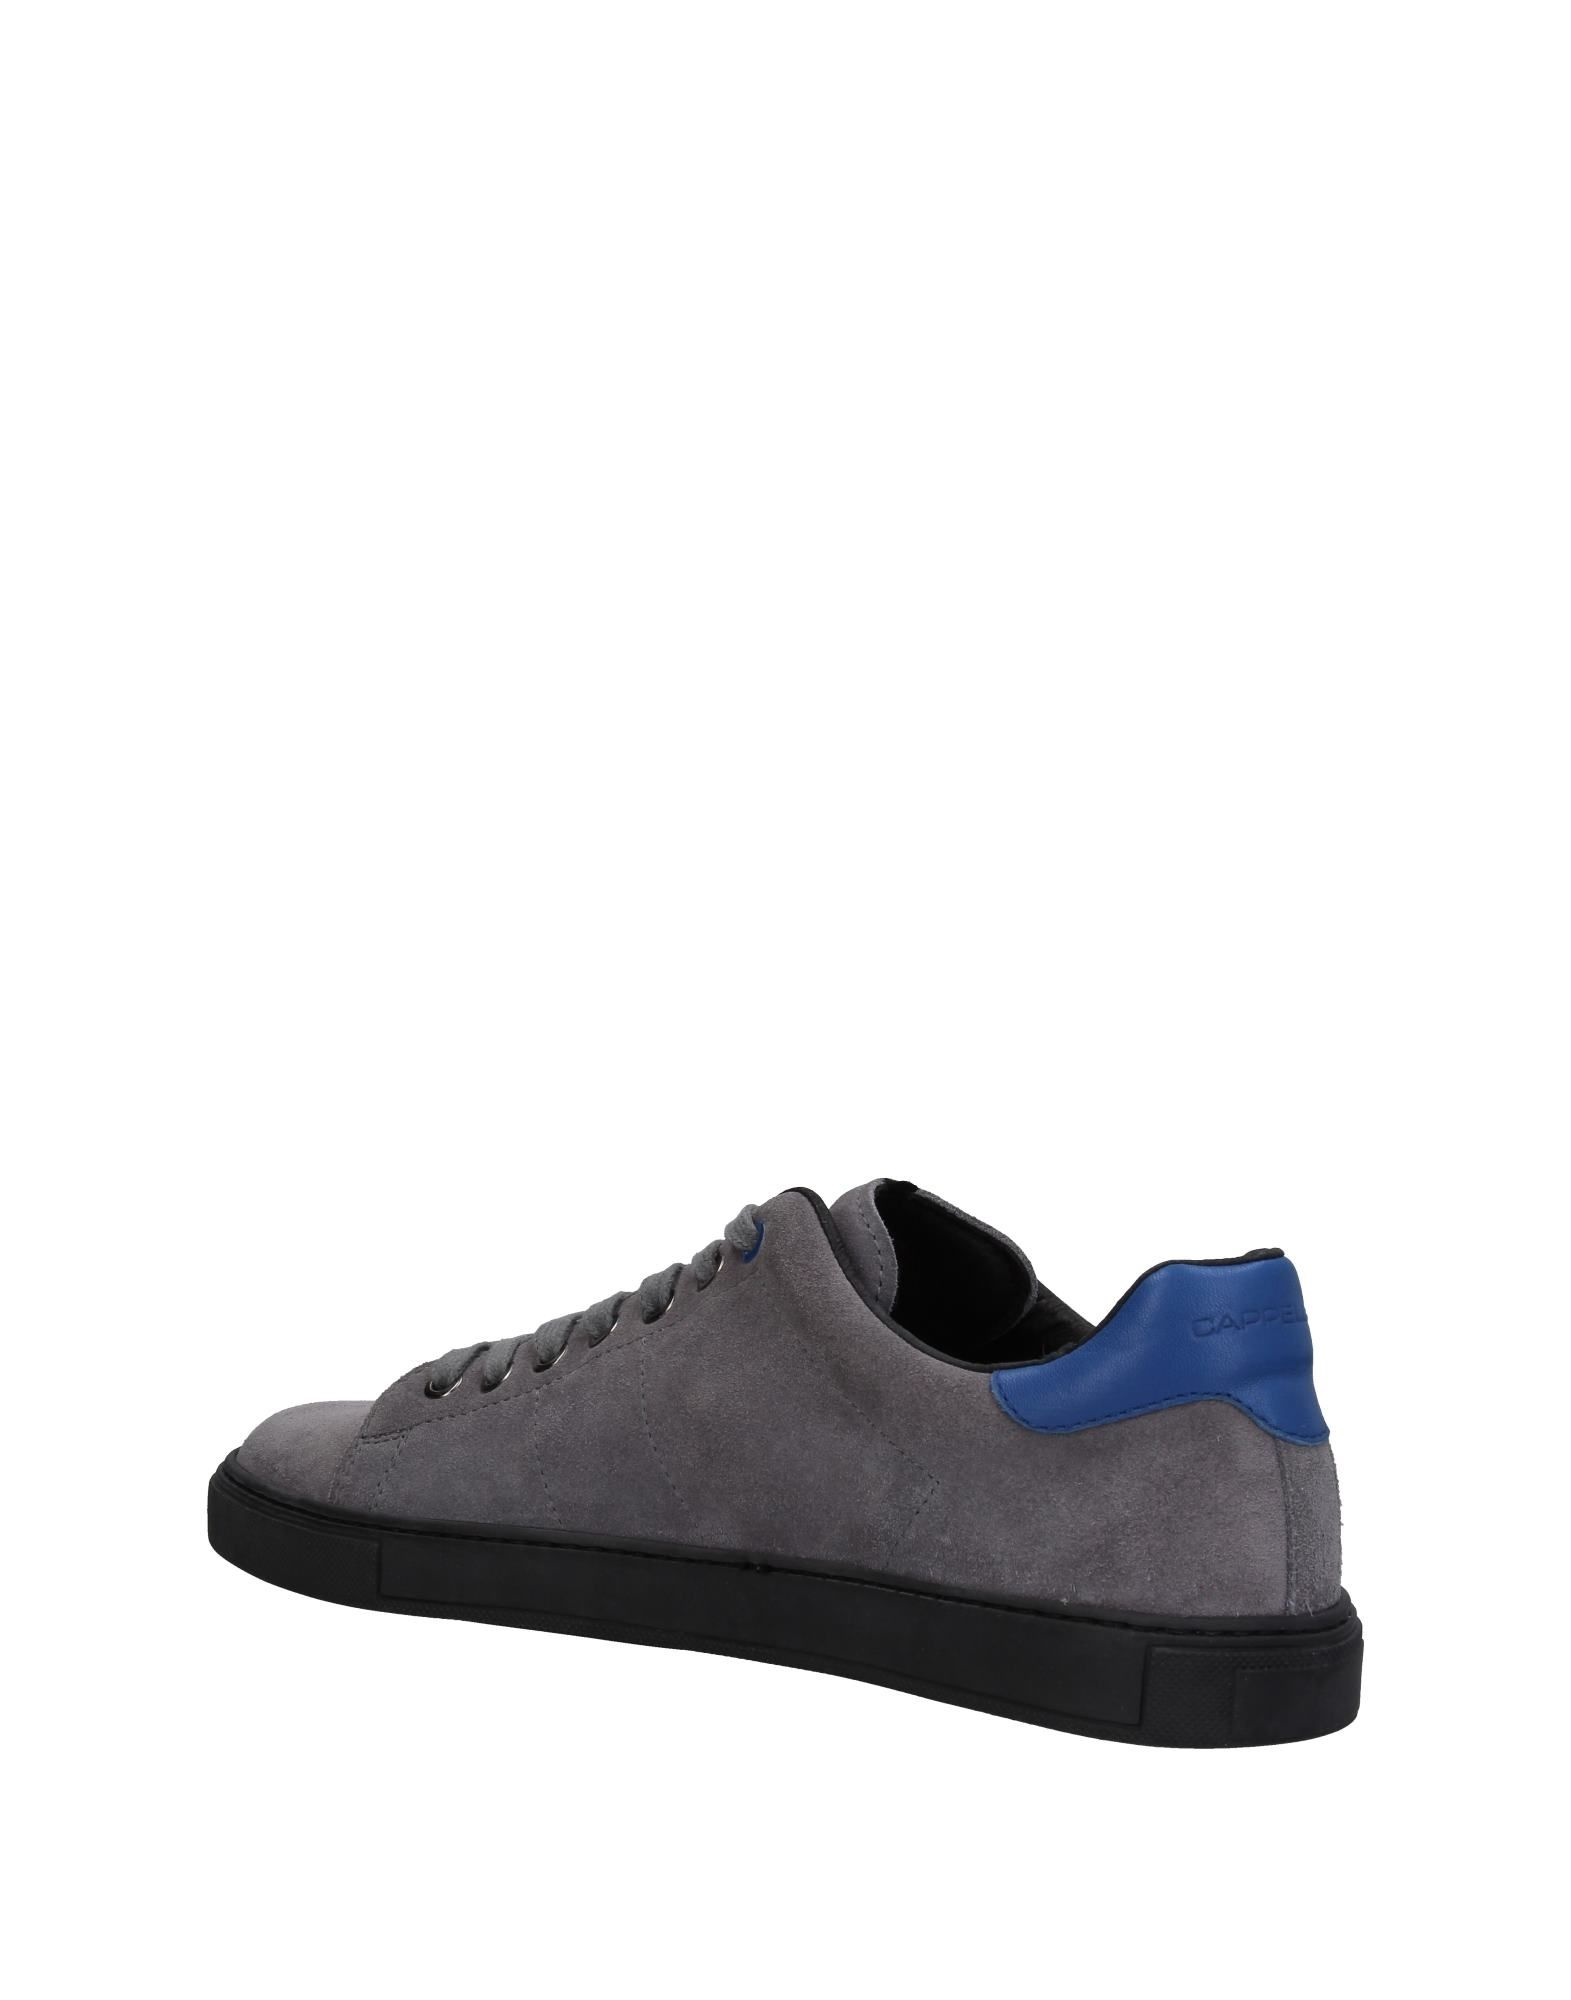 Sneakers Cappelletti Homme - Sneakers Cappelletti sur